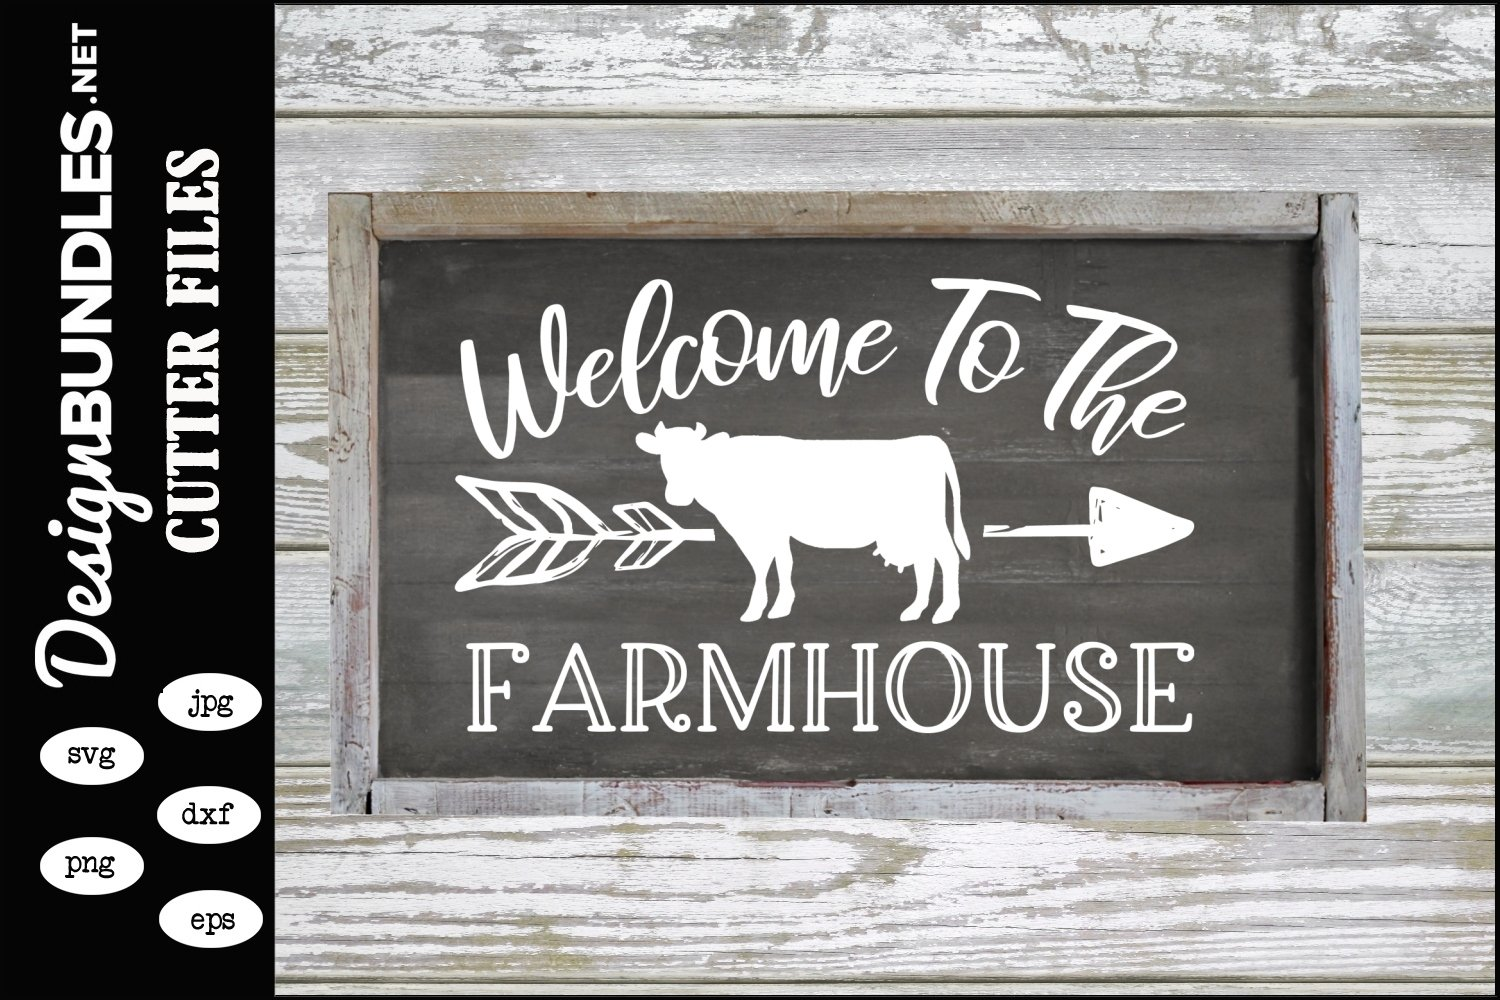 Welcome To The Farmhouse SVG example image 1